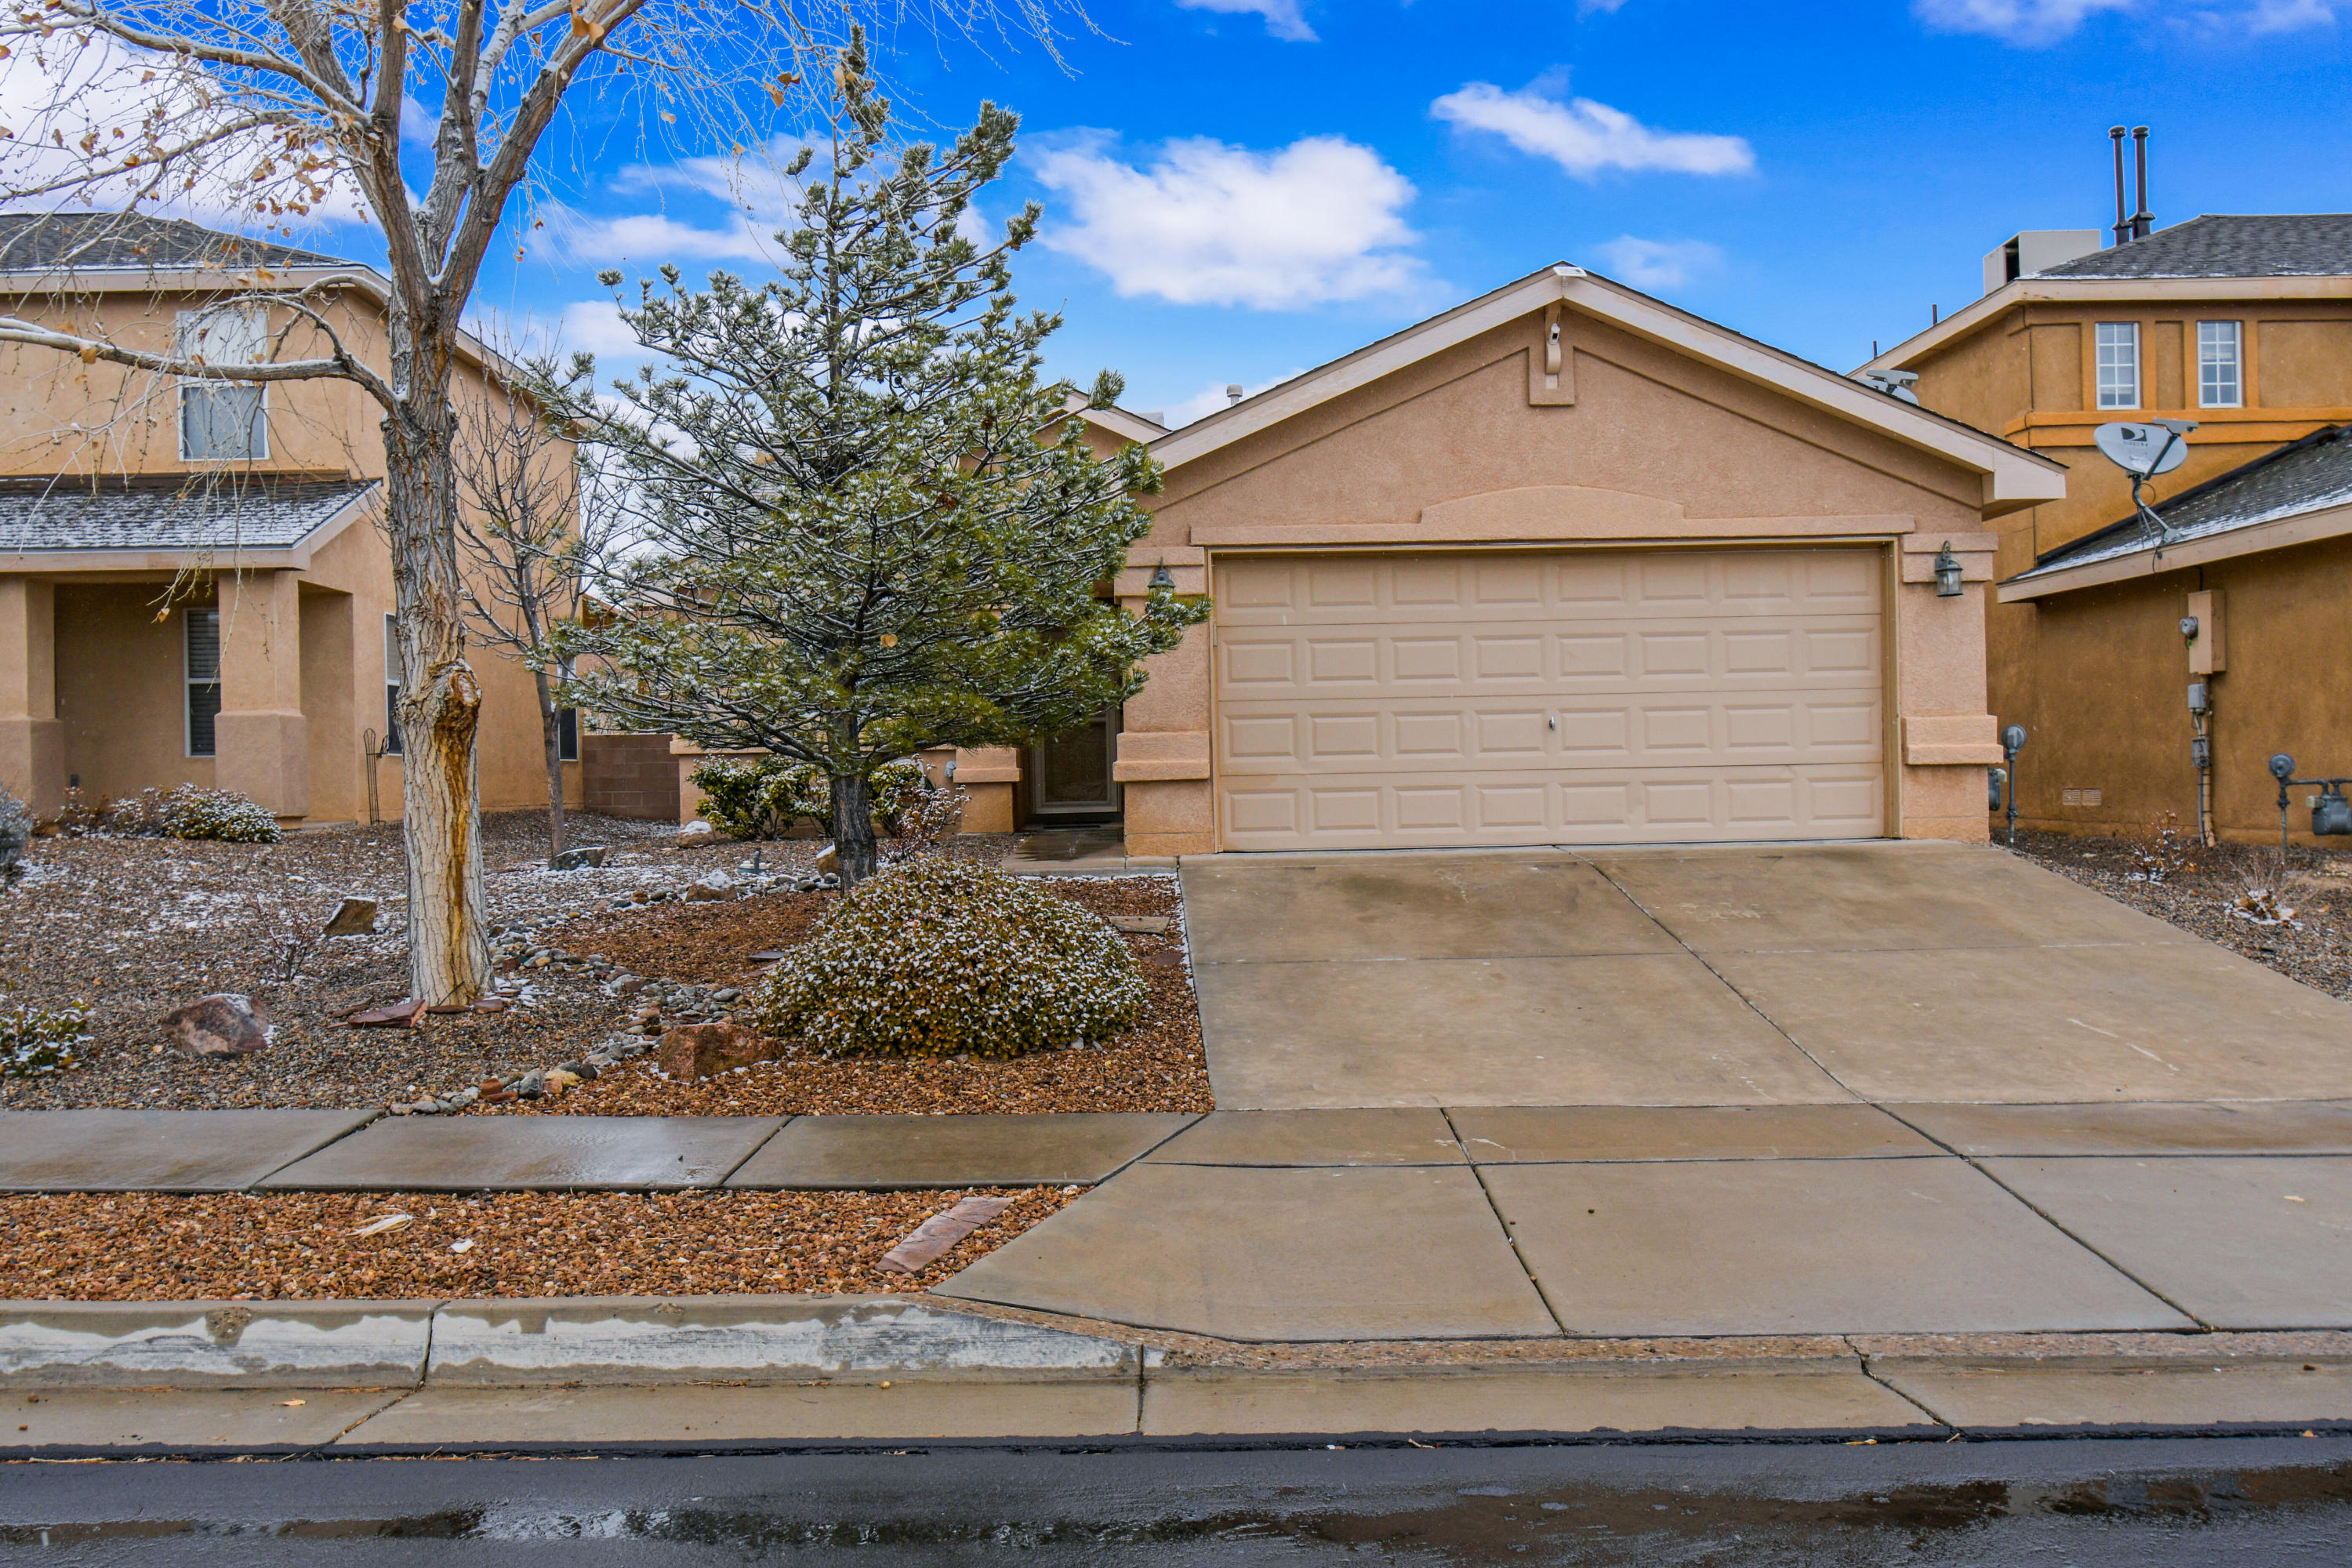 Located in Ventana Ranch, this well cared for  single story home has a great floor plan with a  large great room open to dining and kitchen. Newer carpet in bedrooms and Ceramic tile through the rest of the home.  The back yard is completely landscaped and all appliances convey!